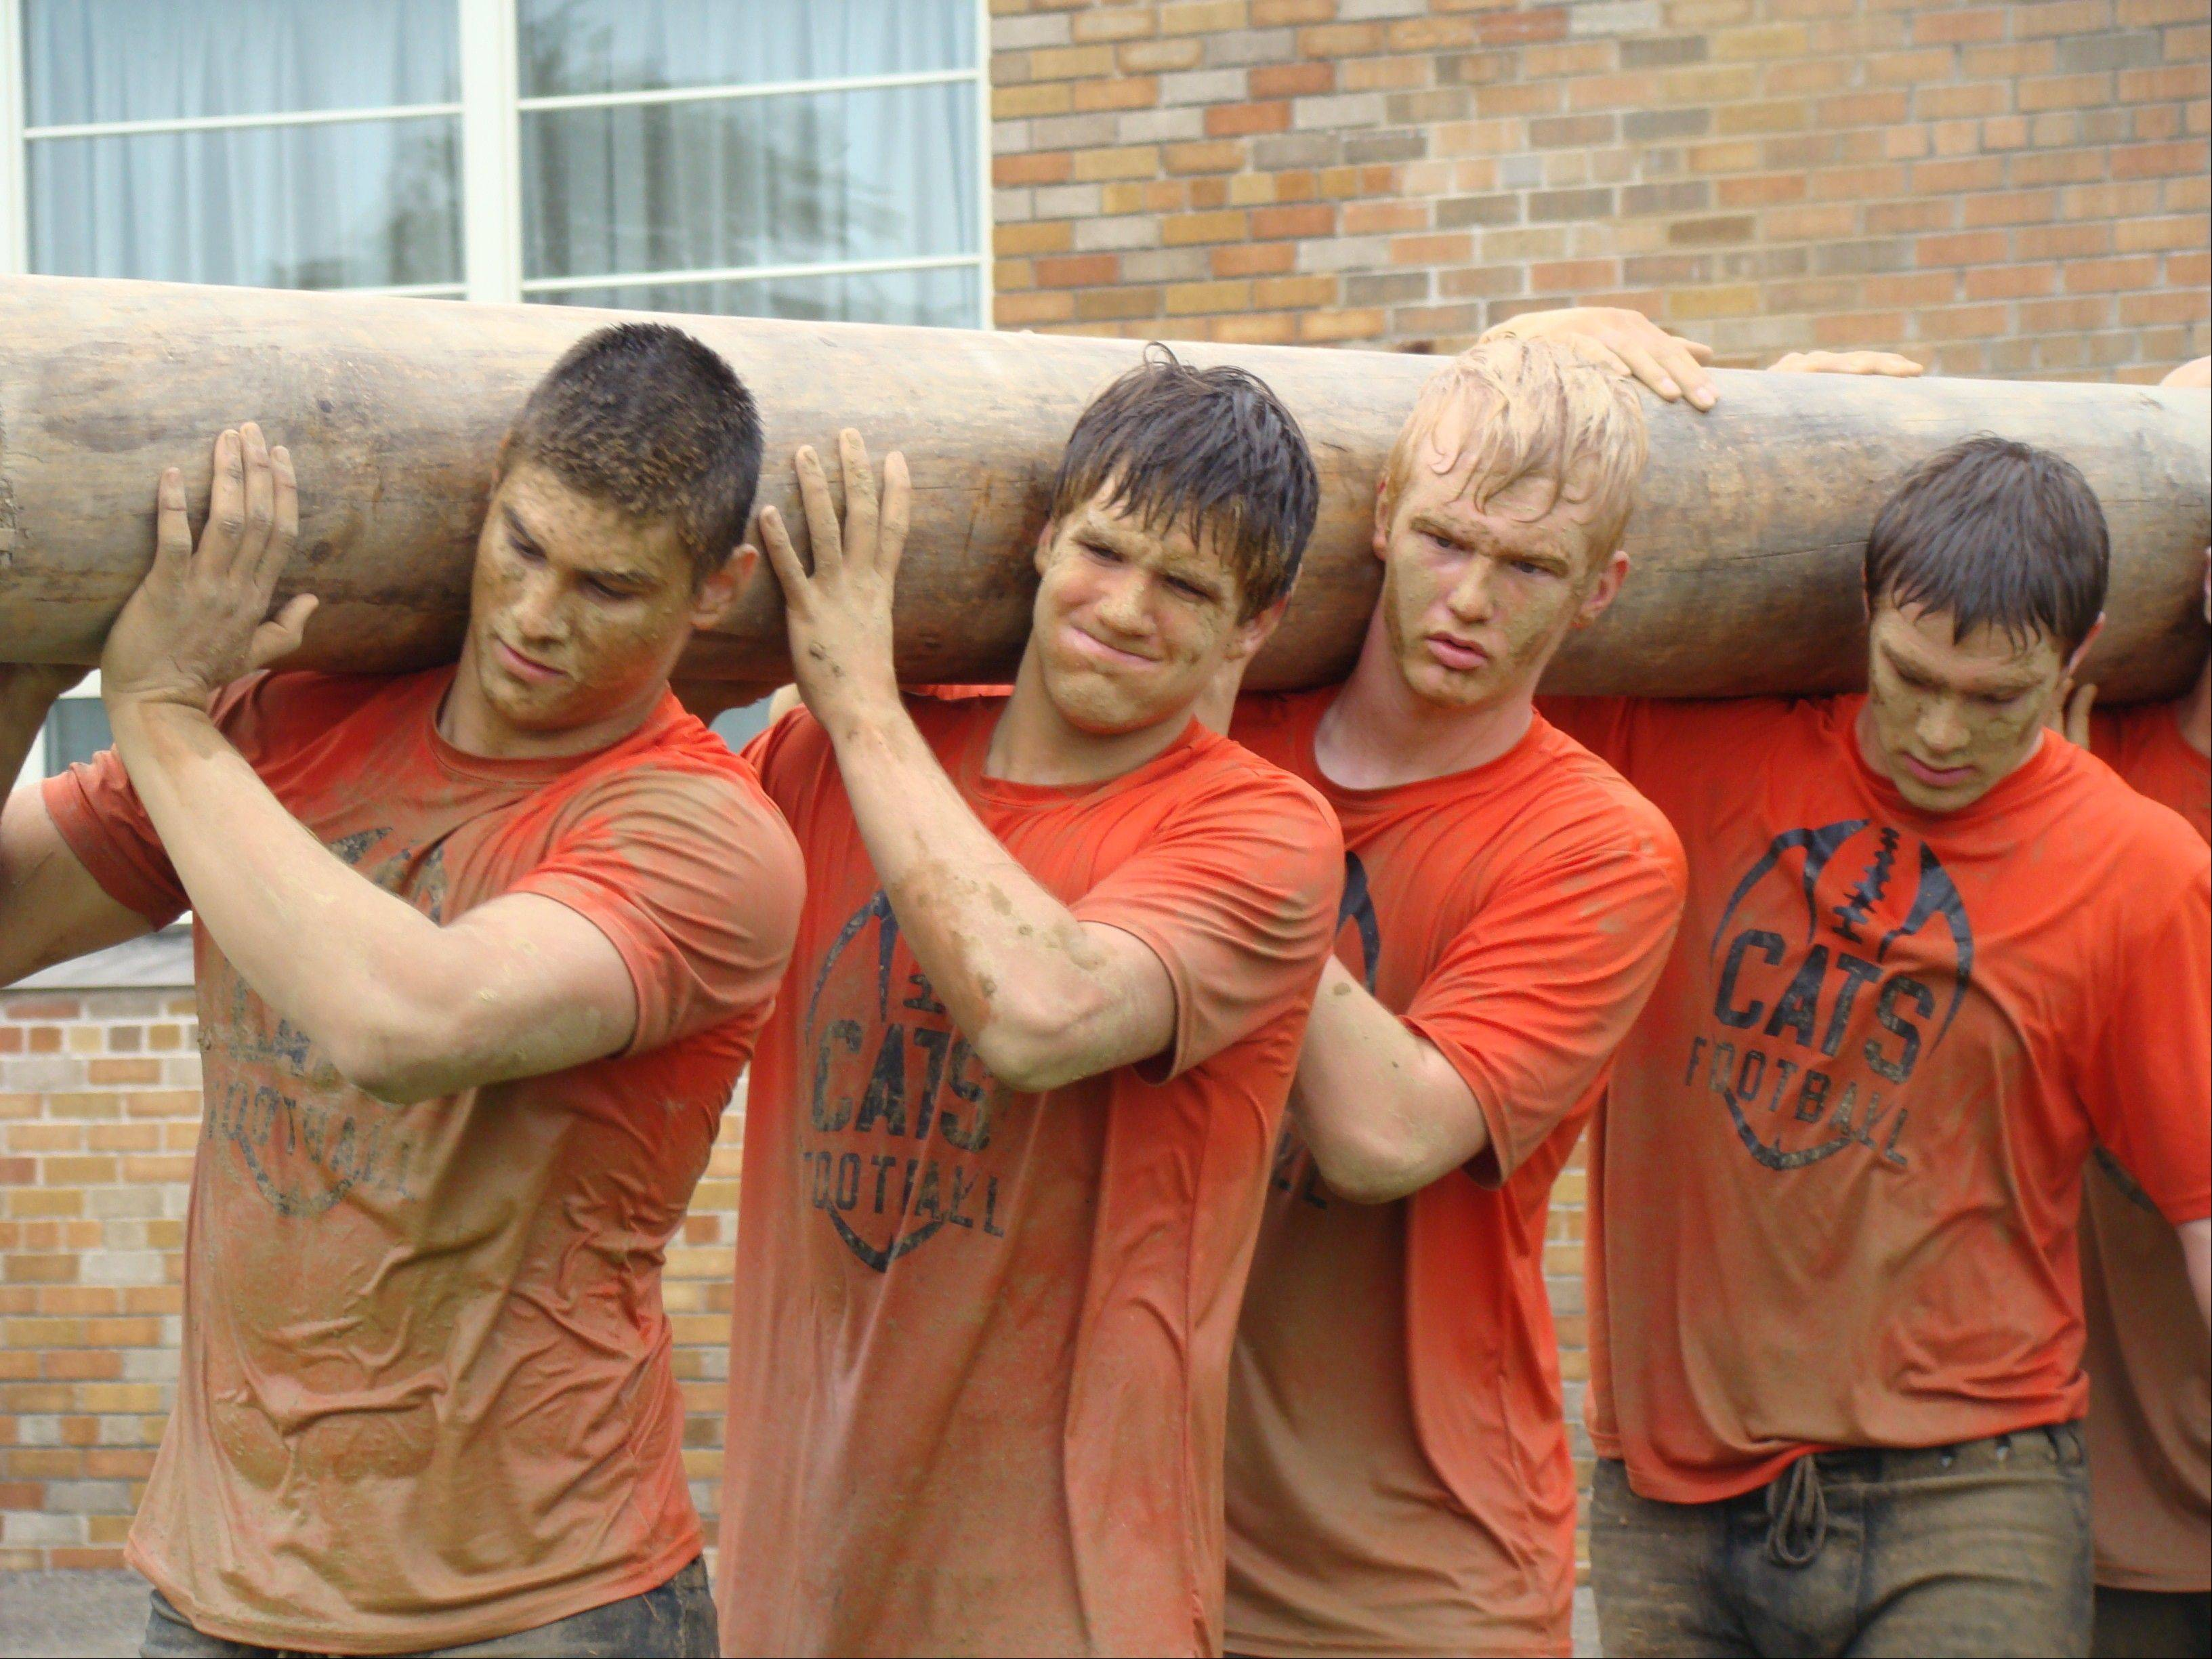 From left, Libertyville's Matsen Dziedzic, Jack Deichl, Justin Jost, Joey Nield log some serious work as part of their Navy SEALs training program.